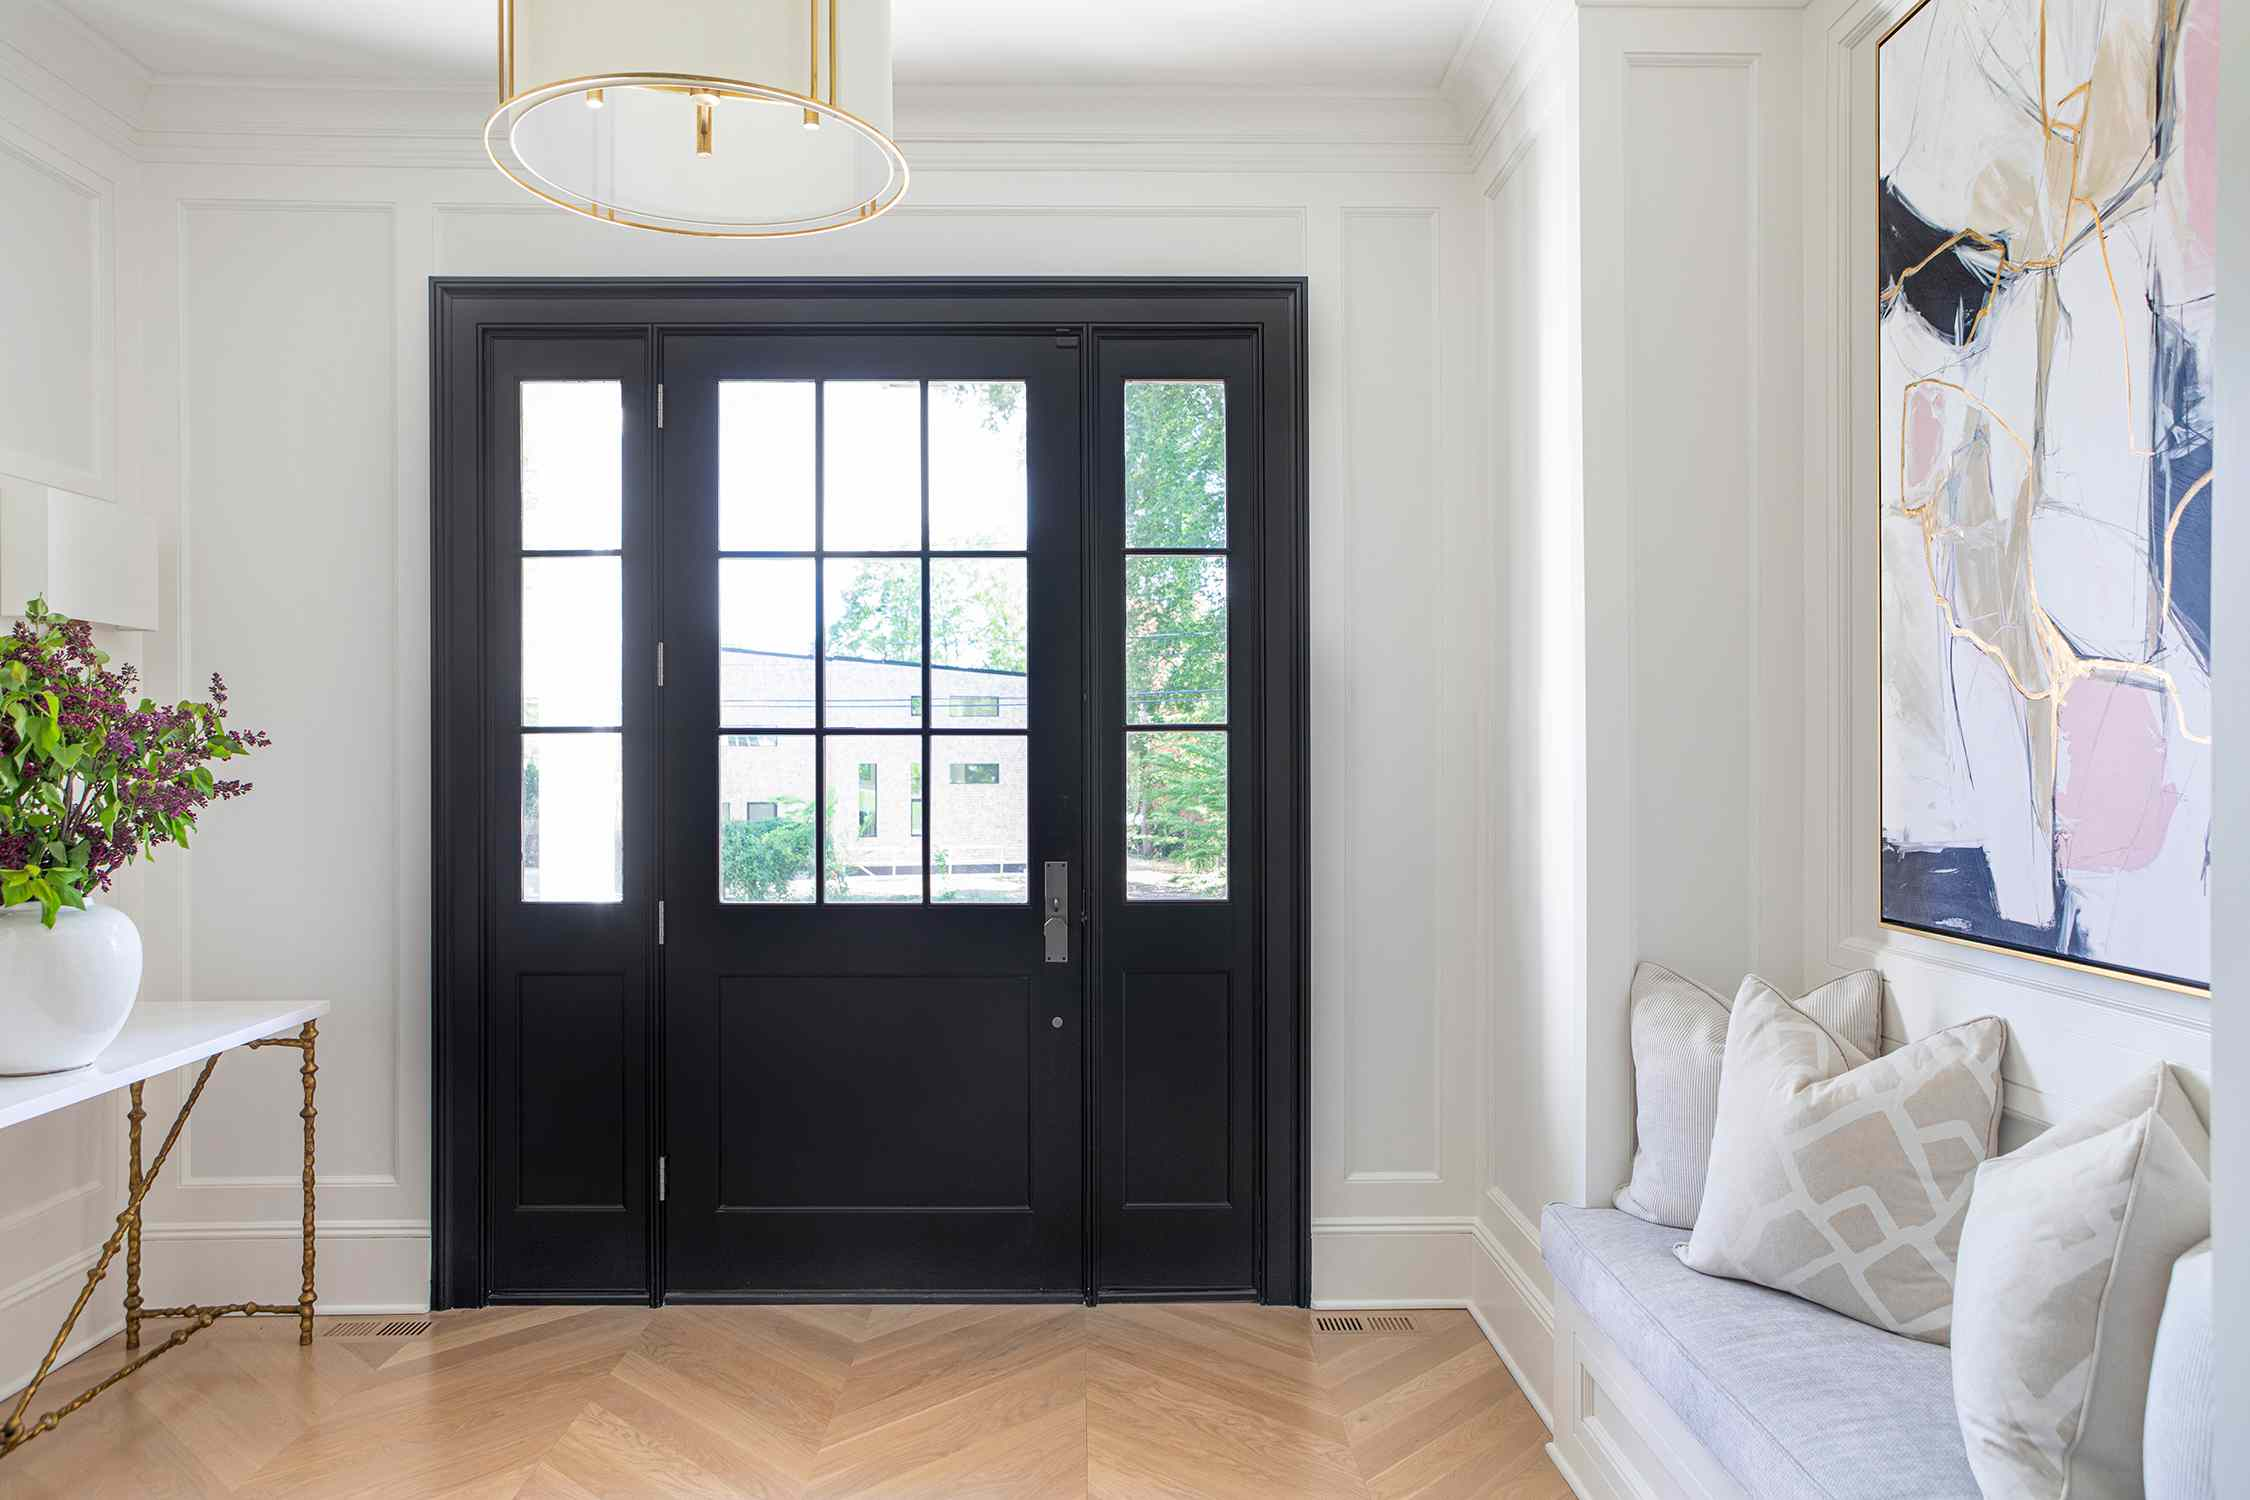 new jersey home tour - entryway with windowseat